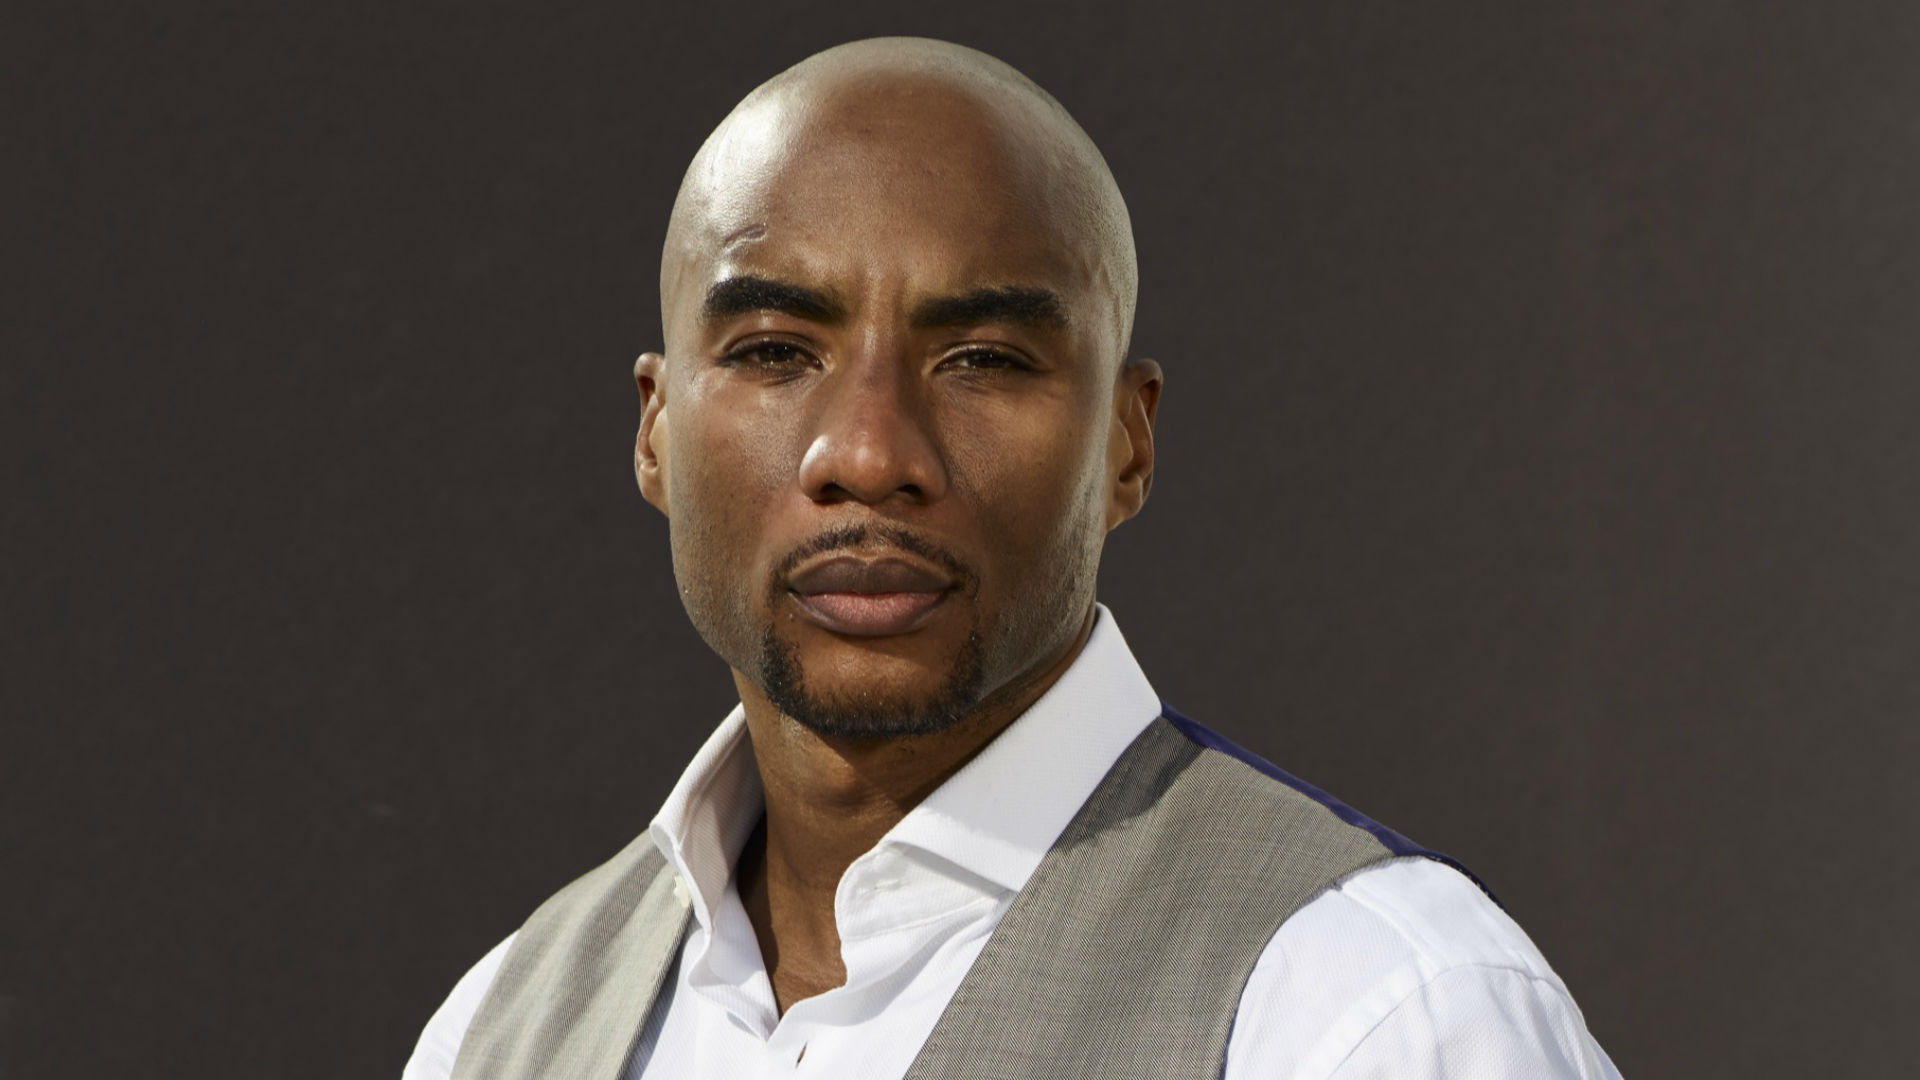 Charlamagne Tha God talks media's continued bashing of Colin Kaepernick, respect for LaVar Ball, new book